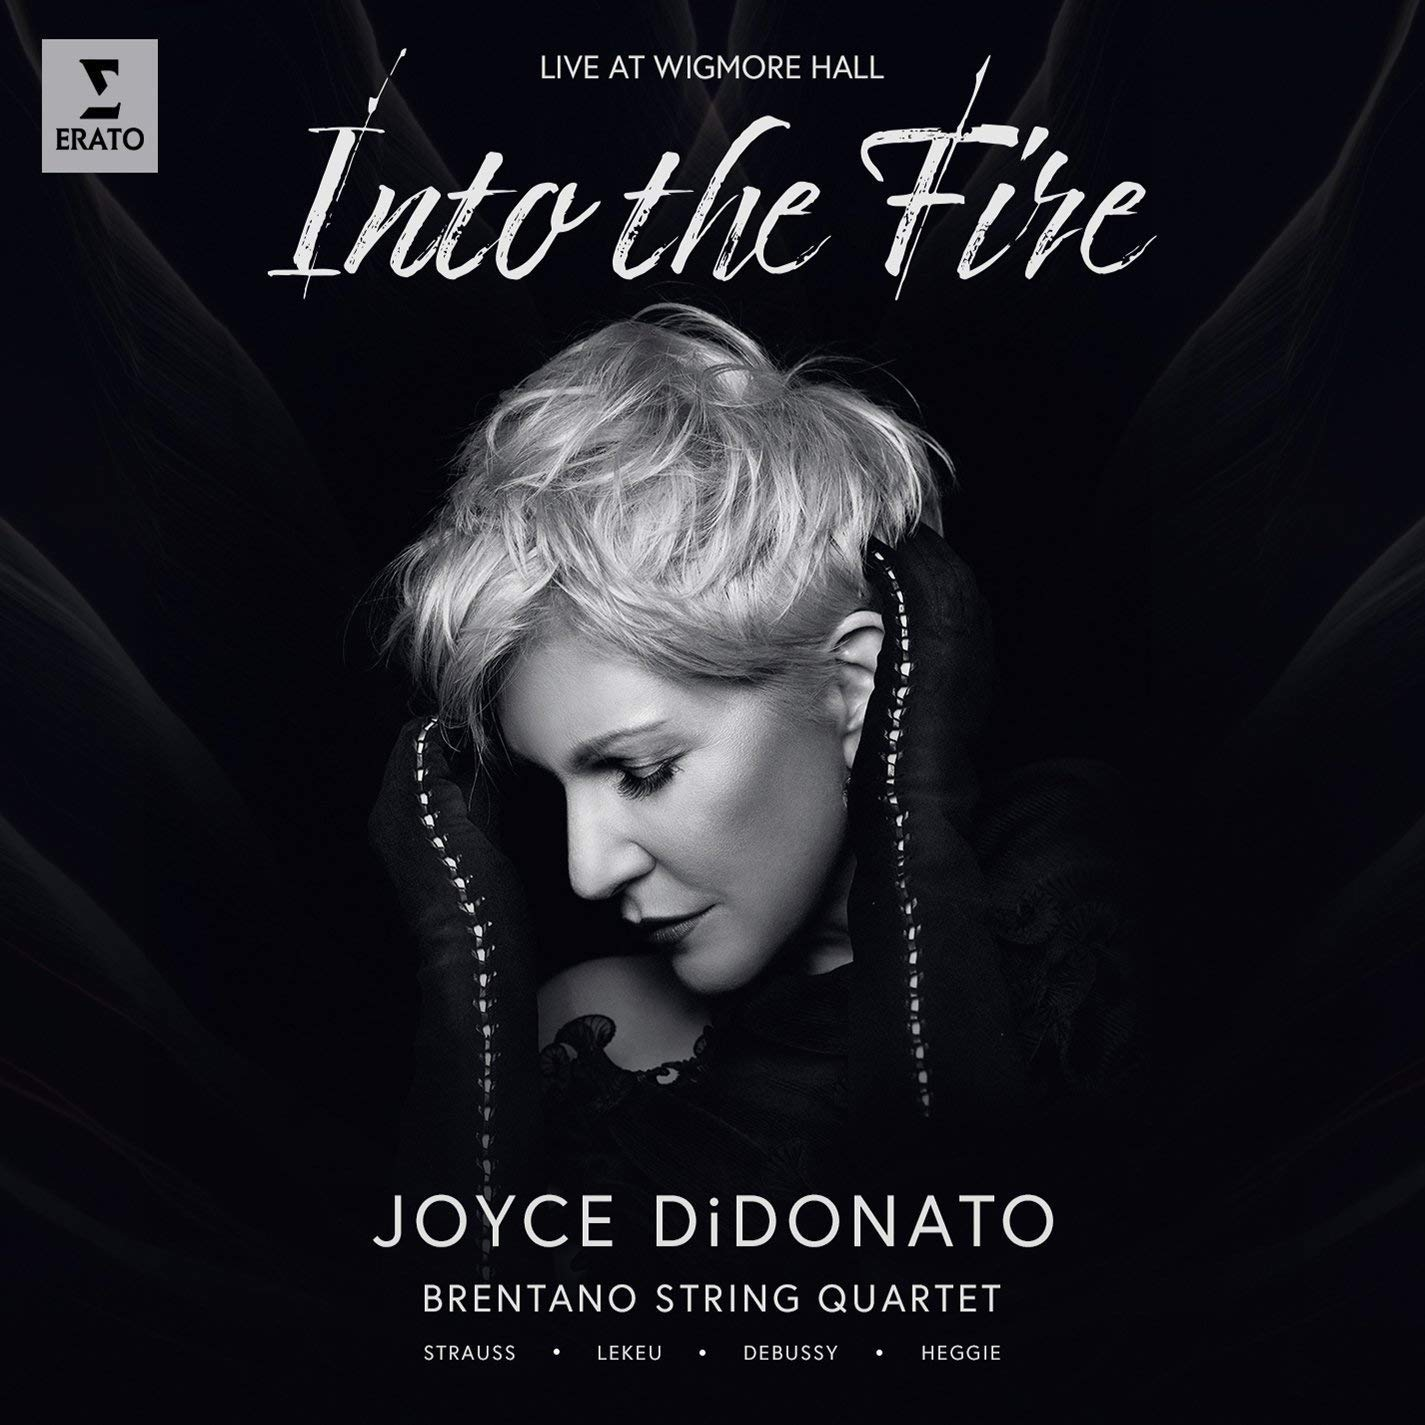 Into the Fire (Live at Wigmore Hall) by Warner Classics/Parlophone